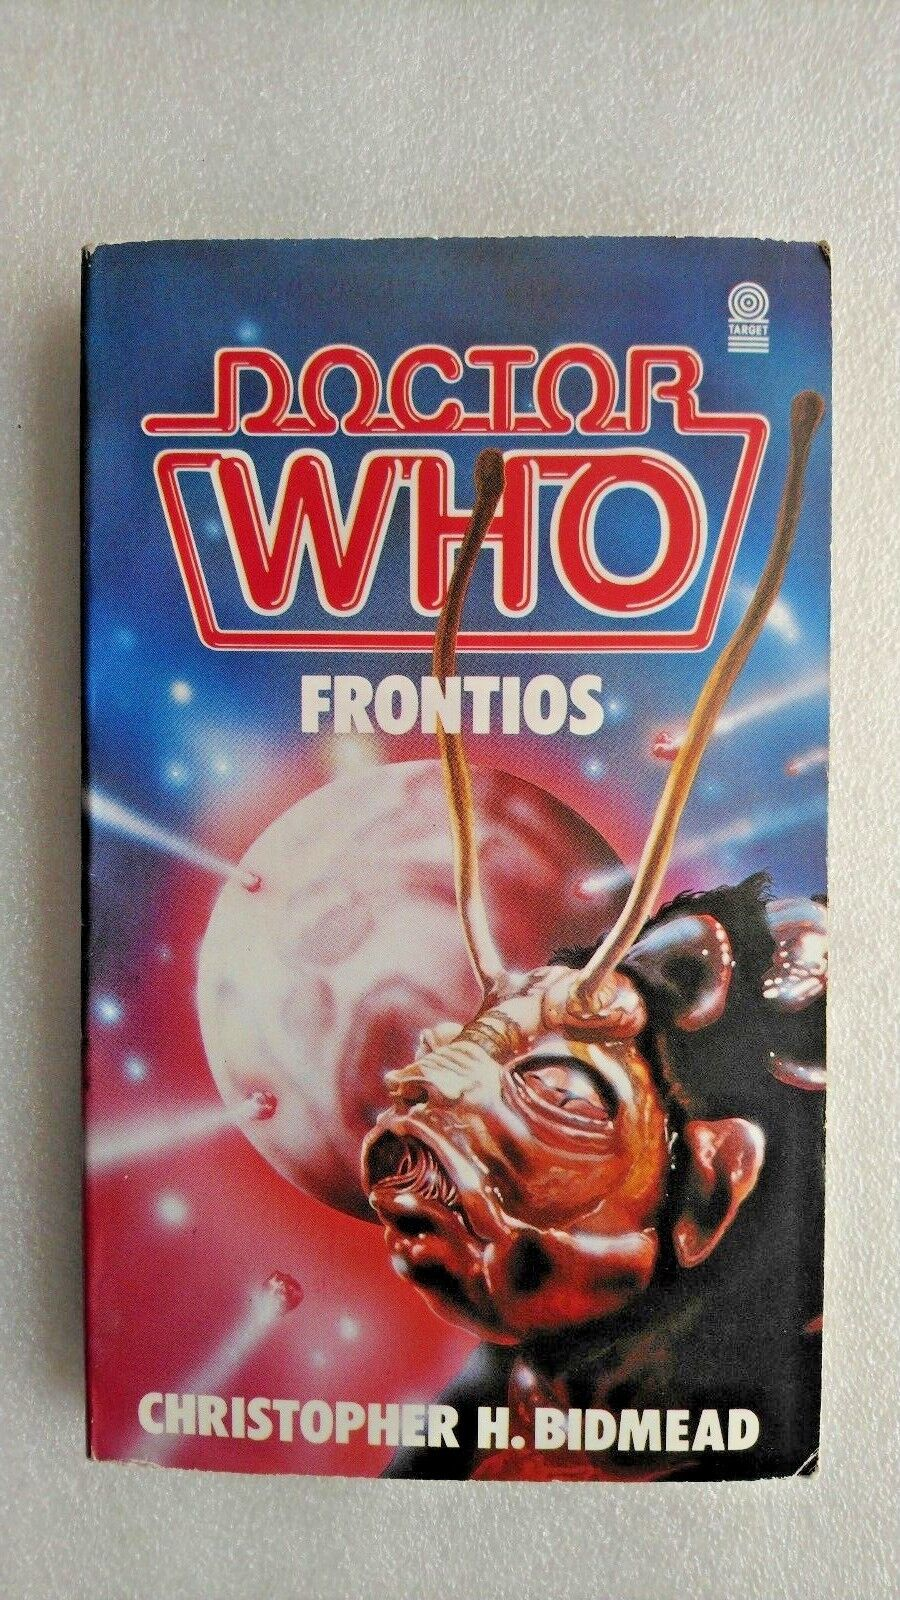 Doctor Who-Frontios by Christopher H. Bidmead (Paperback, 1985) - 1st Edition